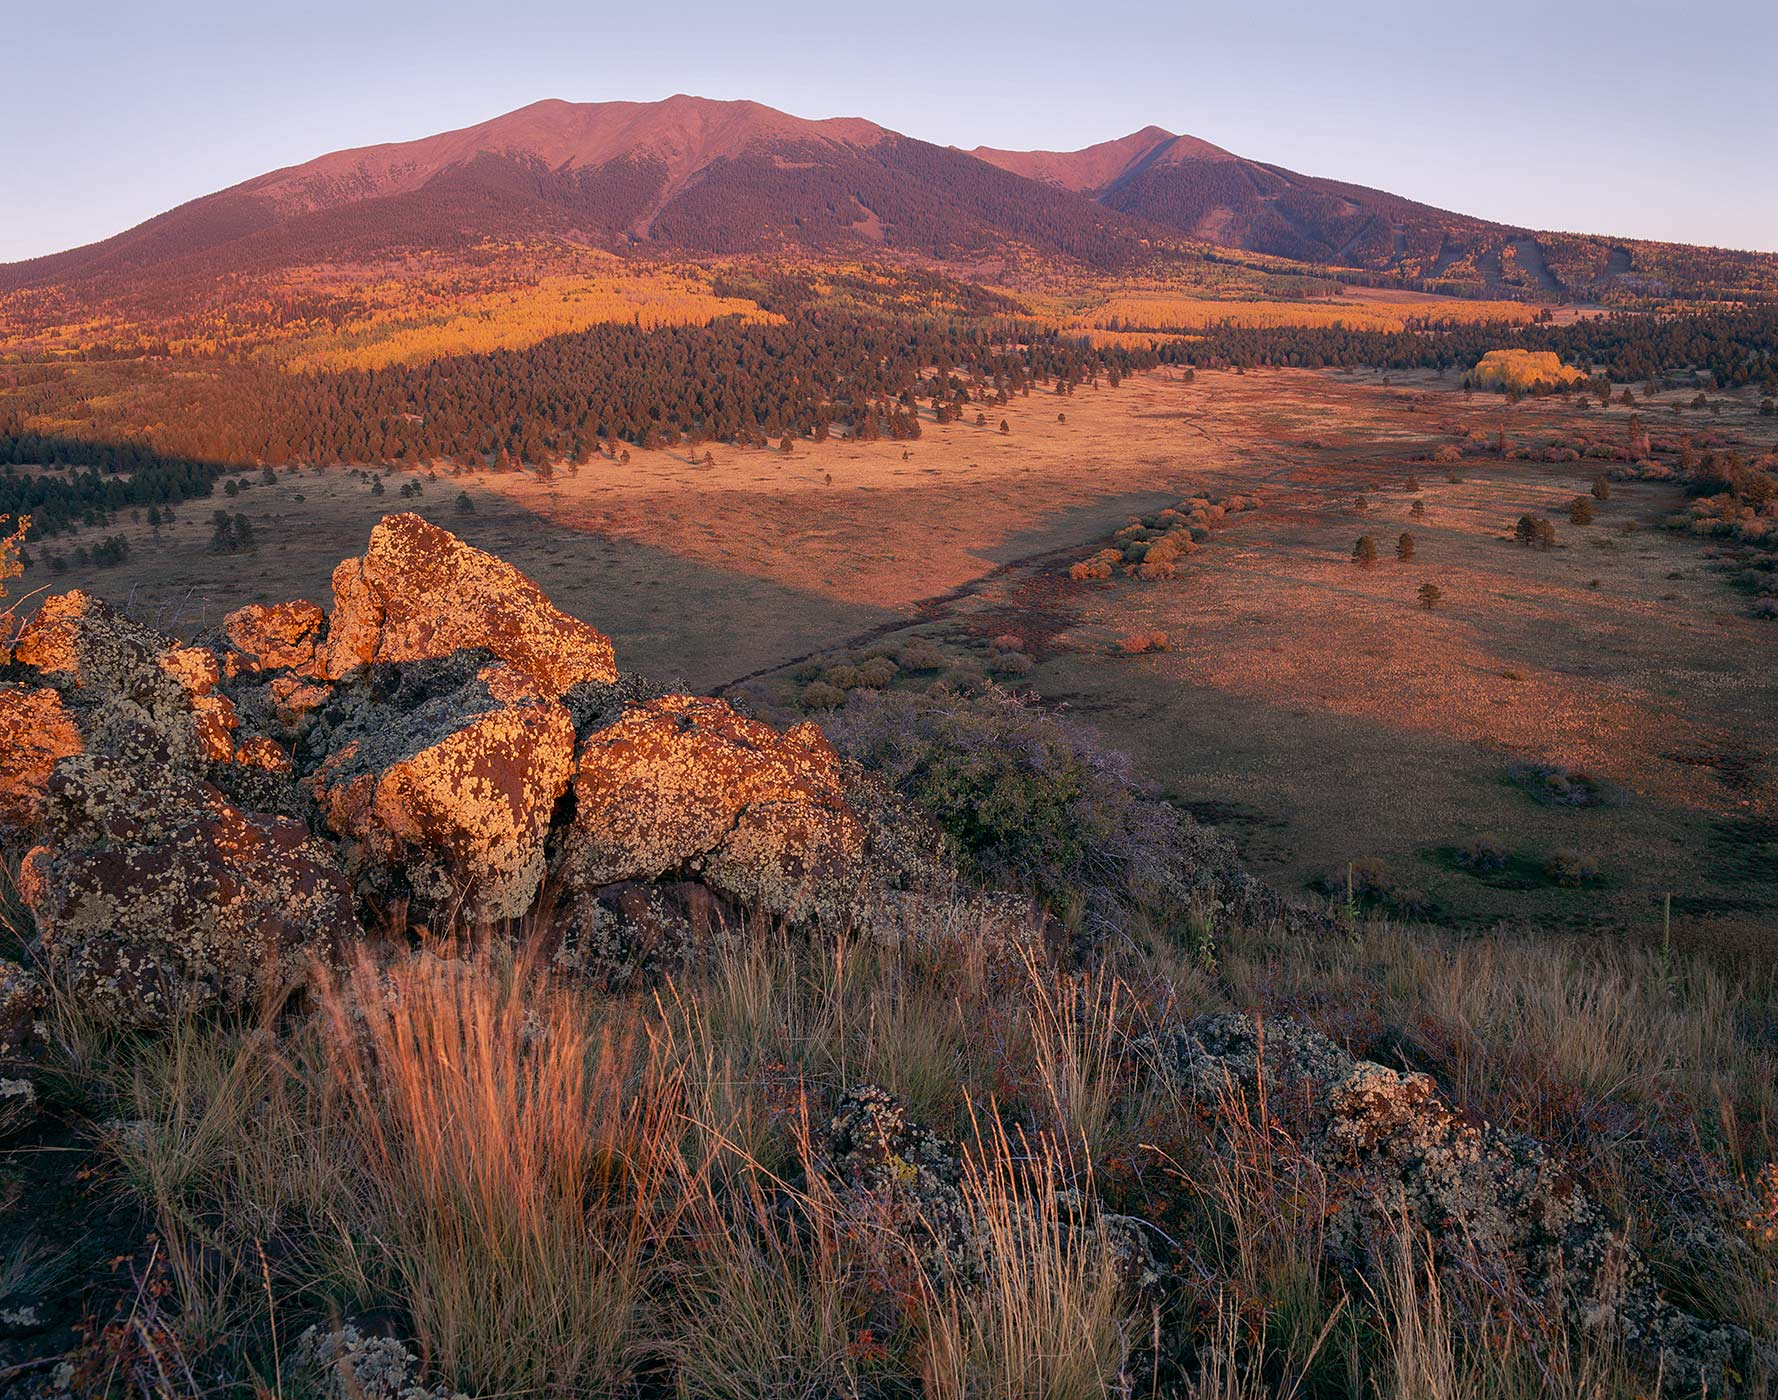 402 San Francisco Peaks in Autumn, Coconino National Forest, Arizona